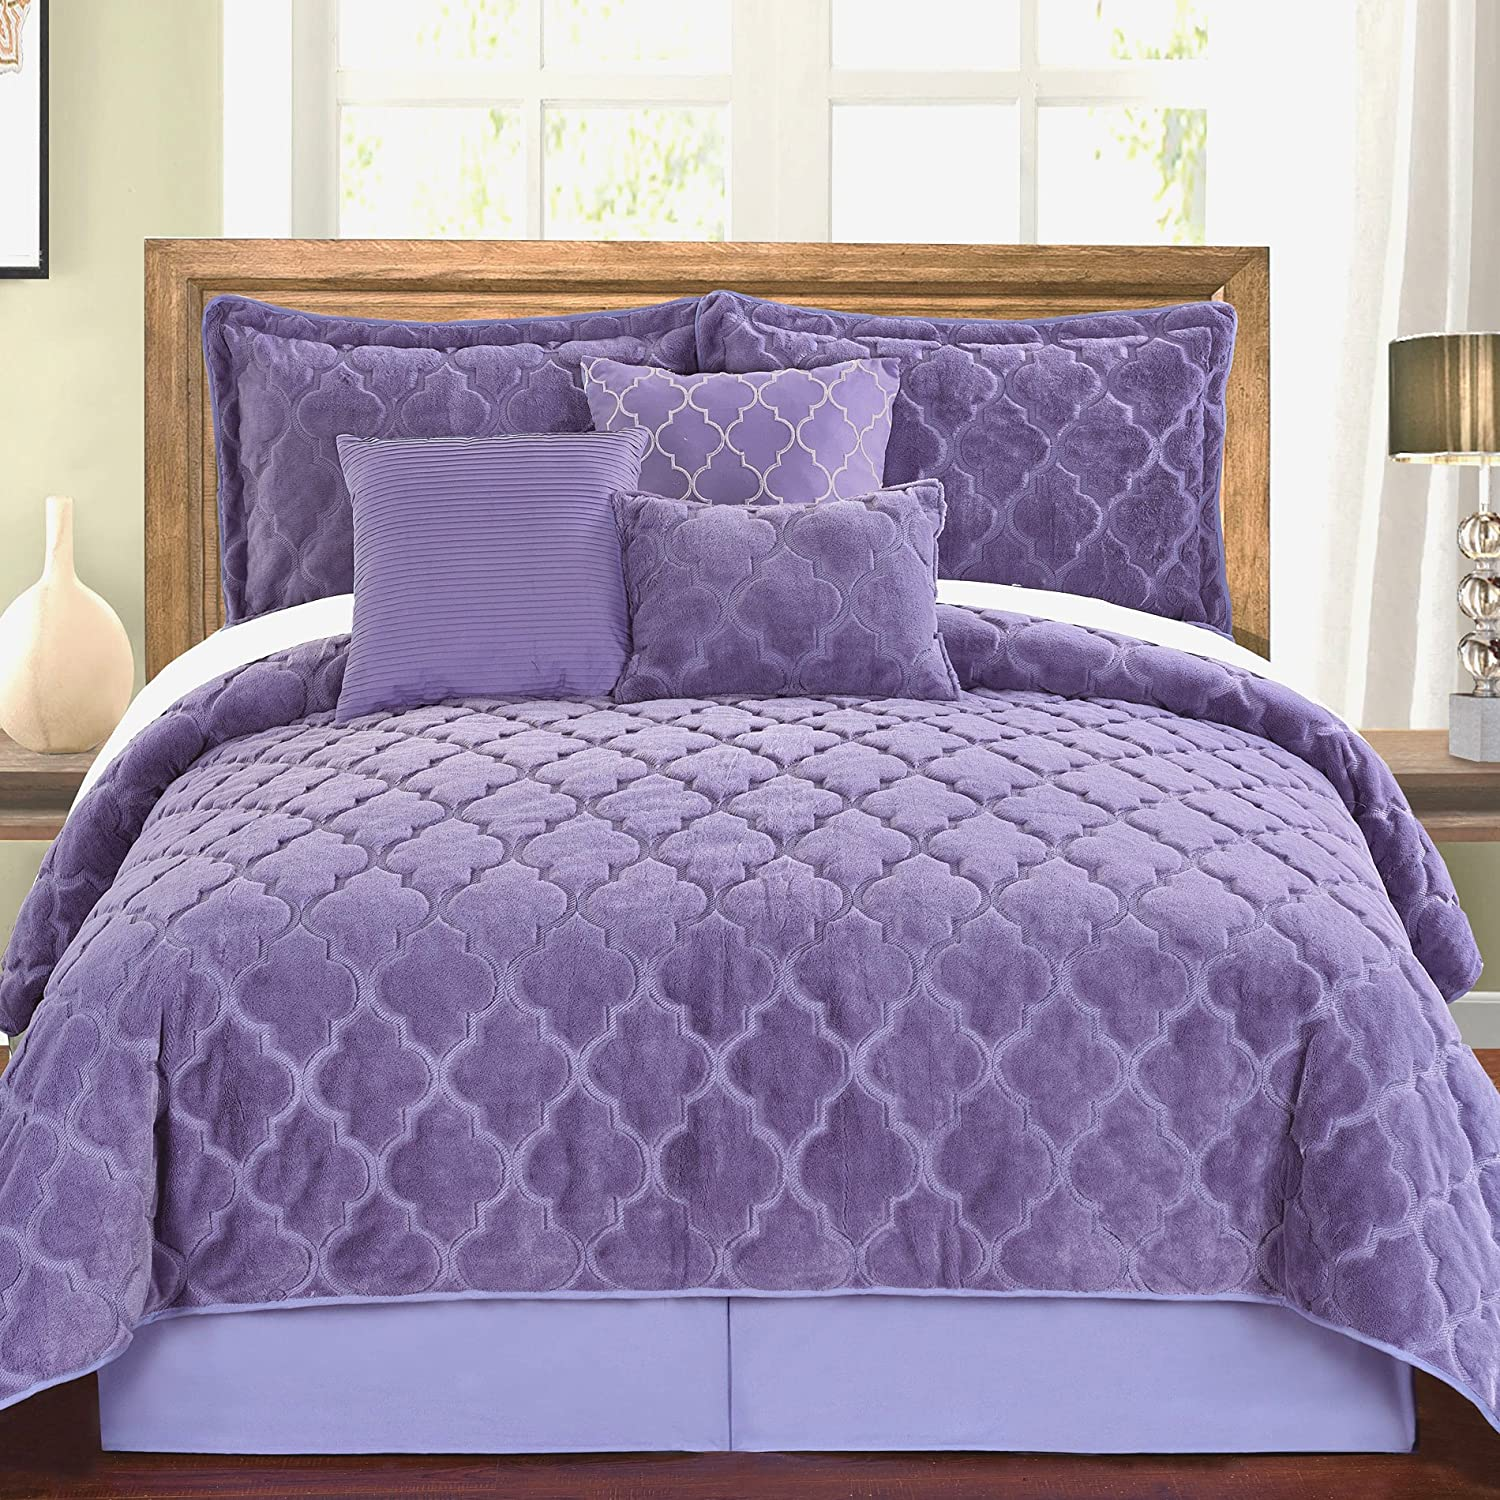 Serenta Faux Fur Ogee Embroidery 7 Piece Bedspread Quilts Set, Queen